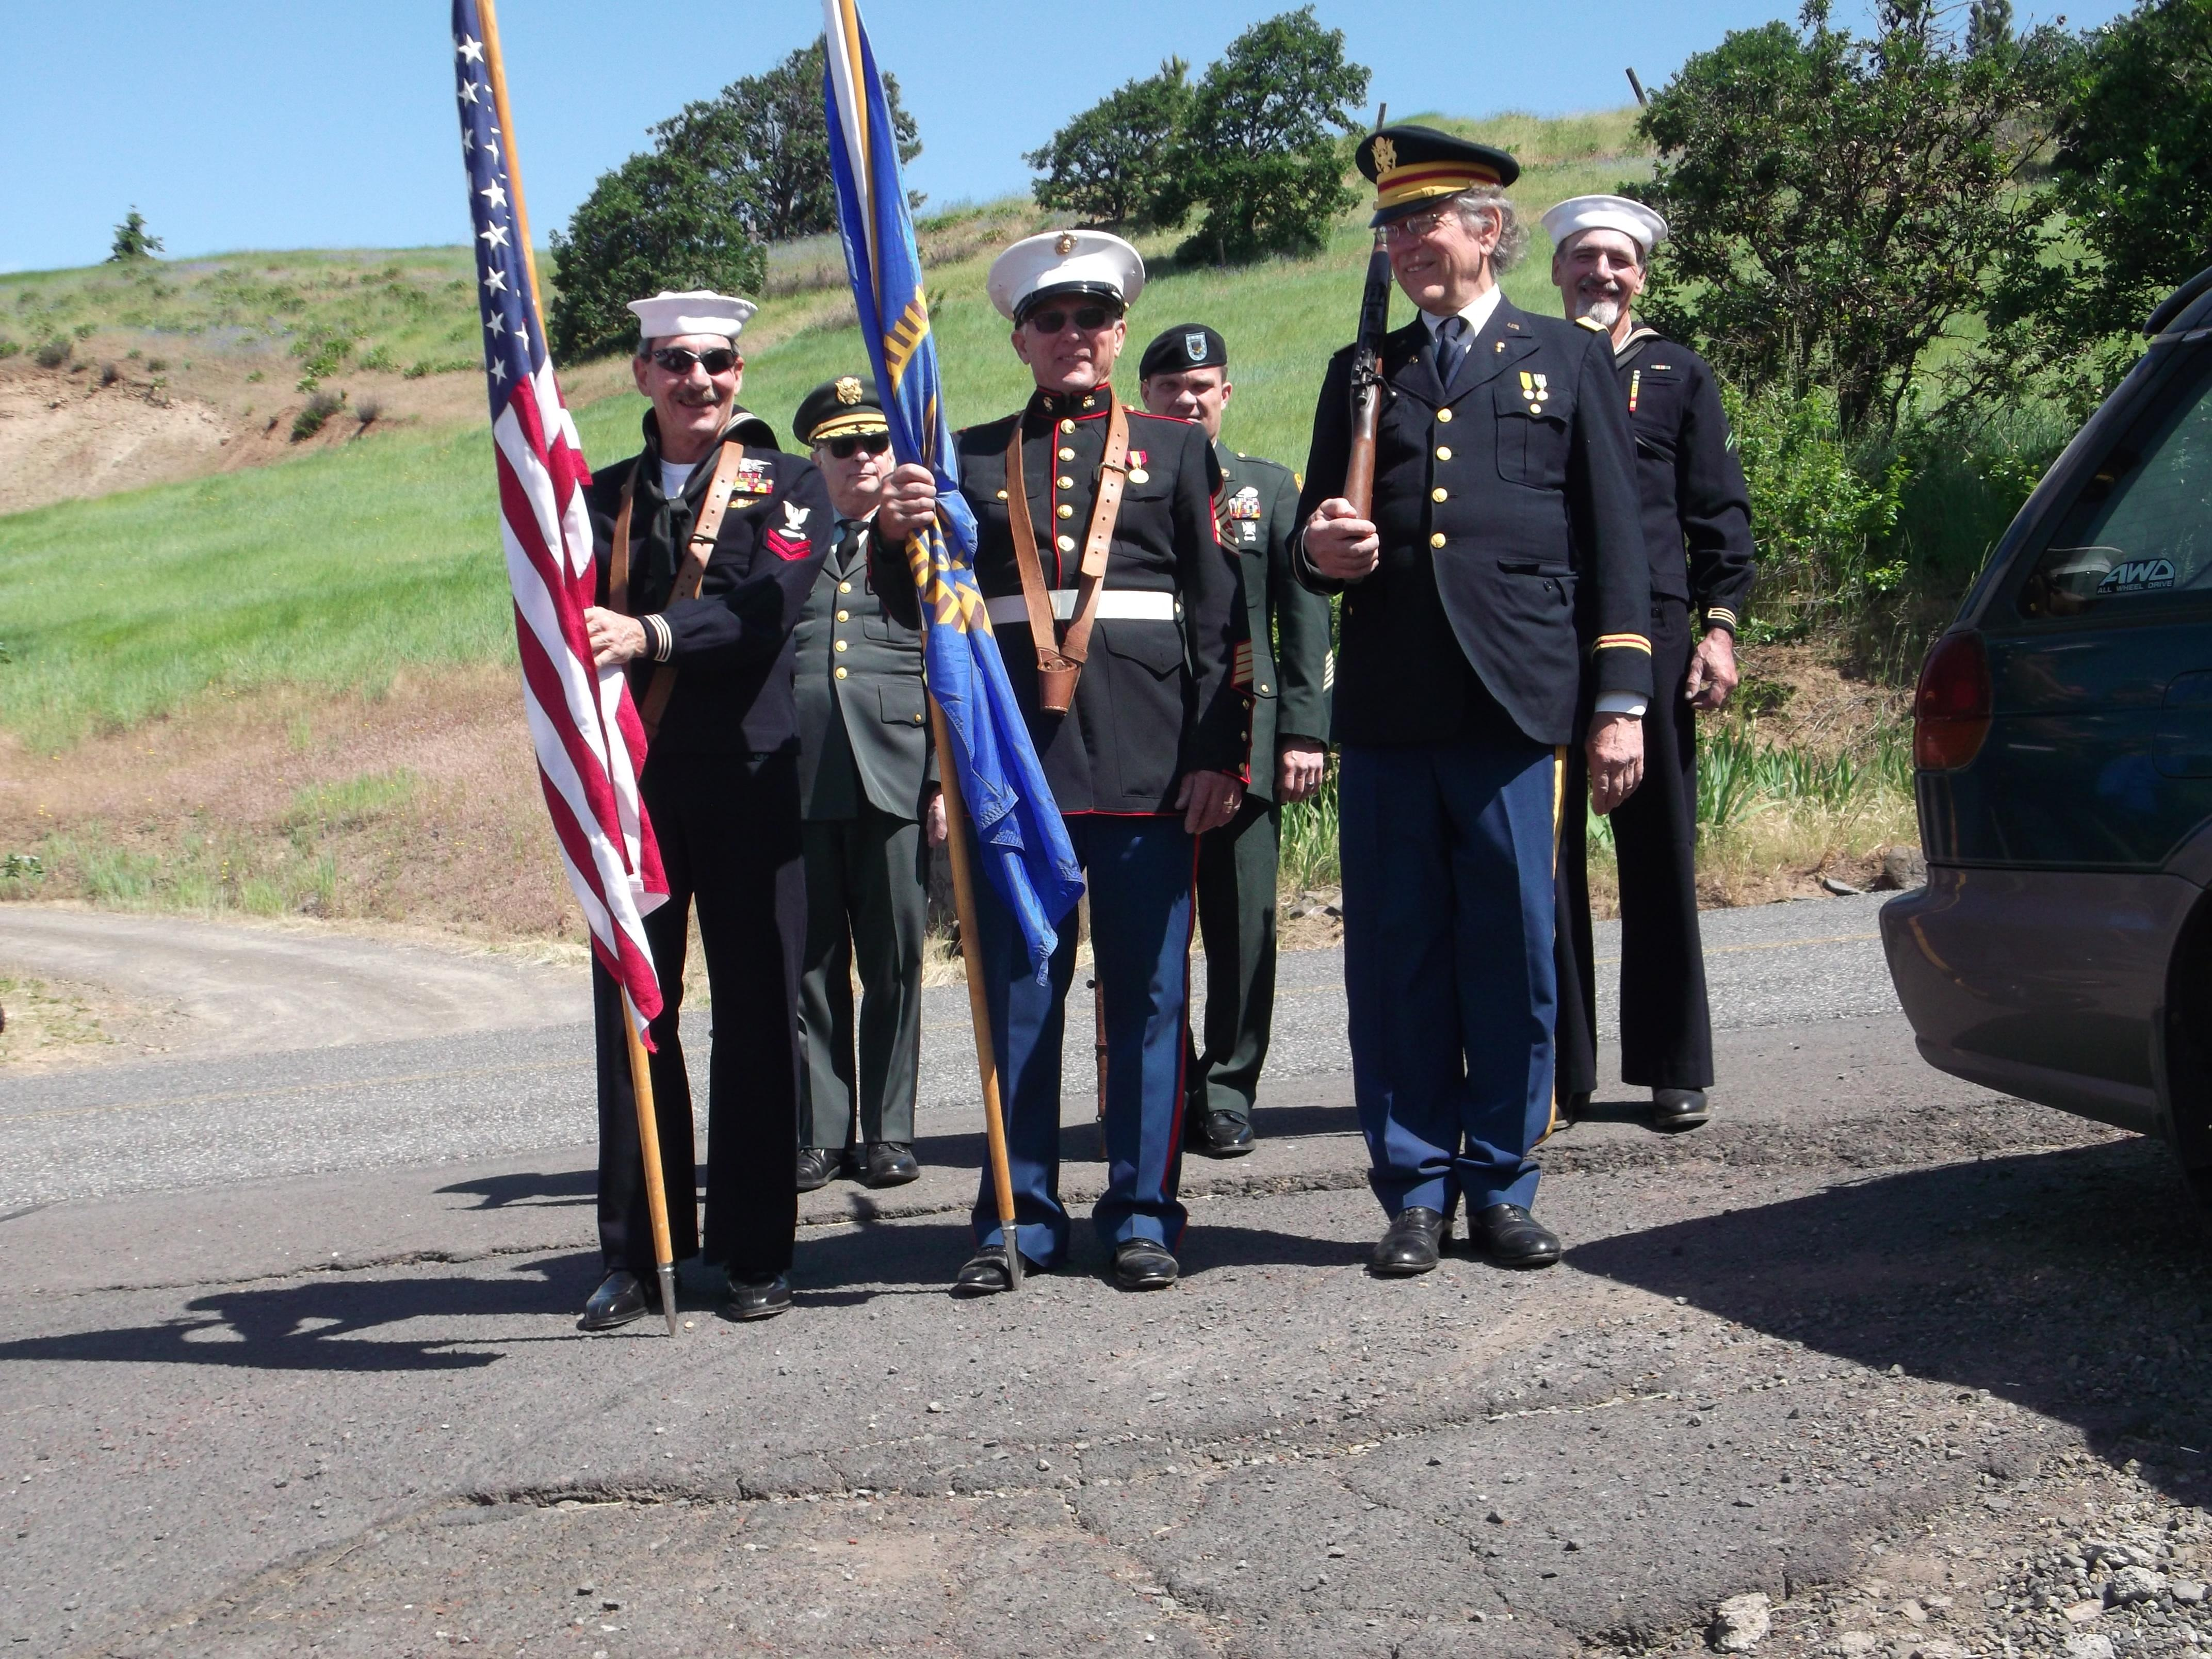 Post 55 American Legion -- Mosier,Oregon. Submitted by Bob Maz.{&amp;nbsp;}<p></p>